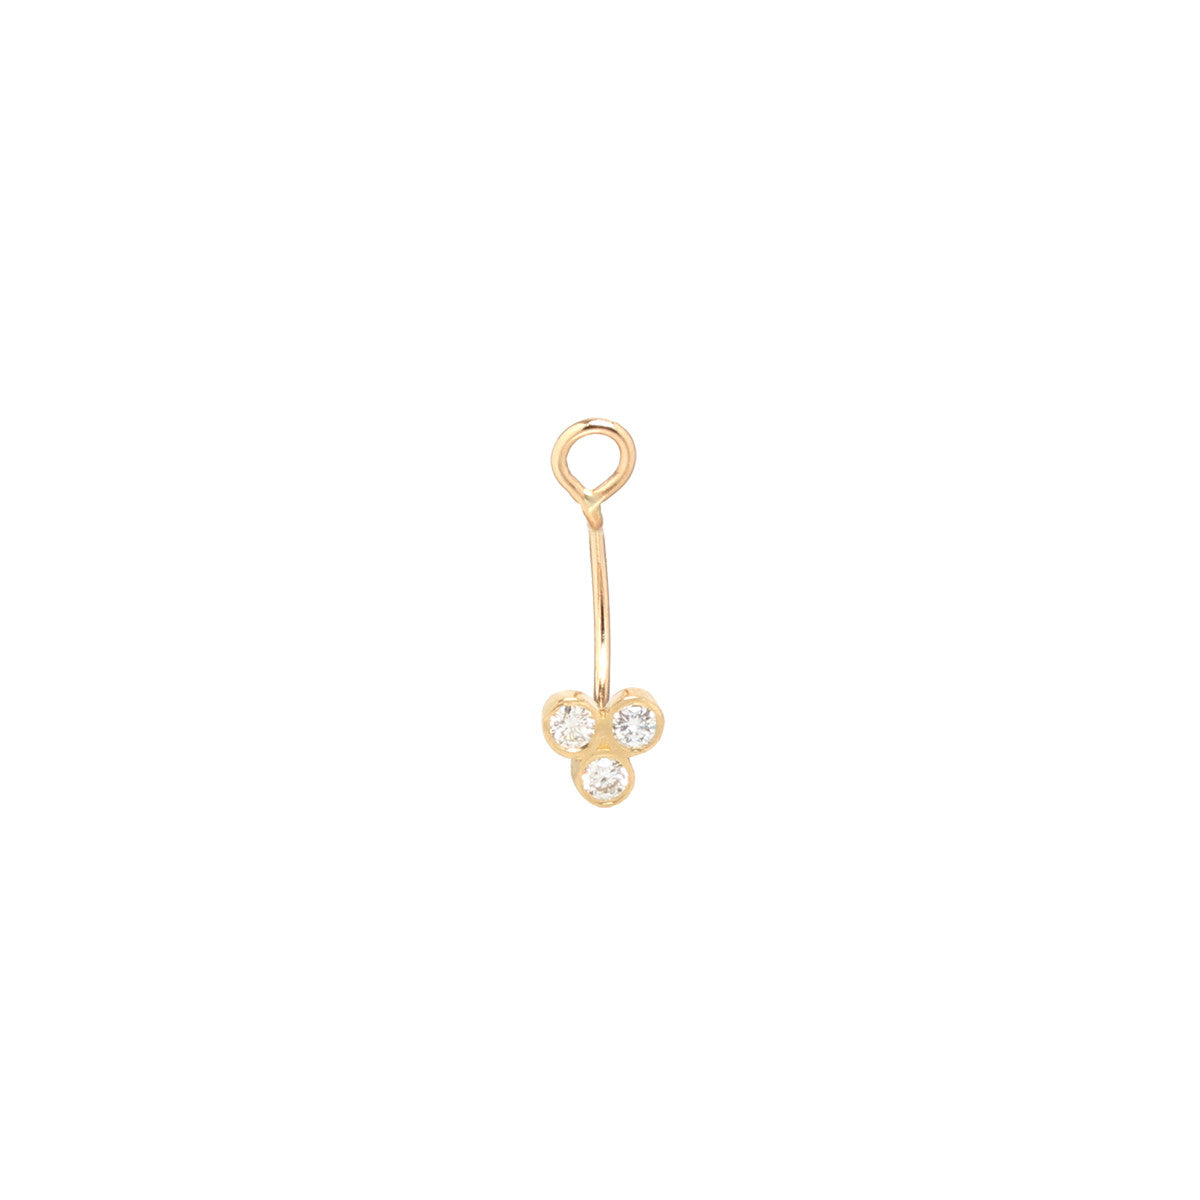 Zoë Chicco 14kt Yellow Gold White Diamond Trio Stud Charm Earring